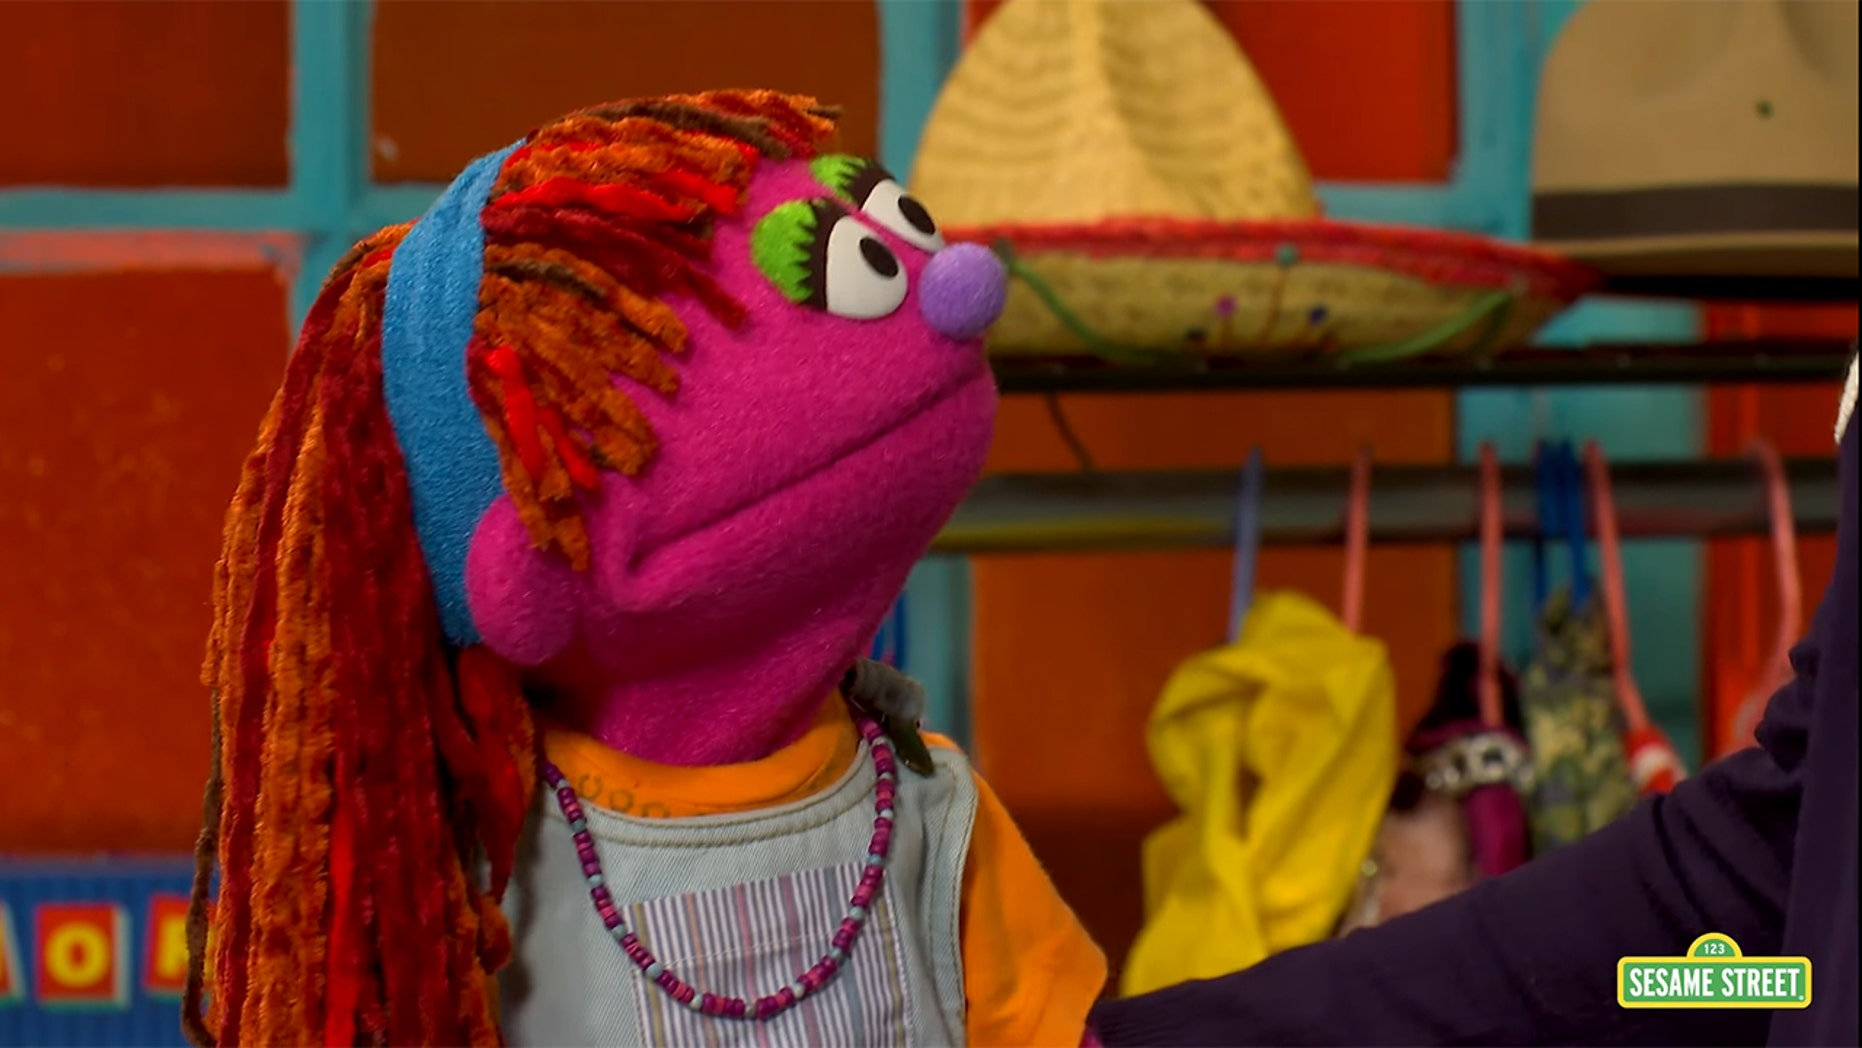 Sesame Street Muppet Lily Becomes First to Face Homelessness